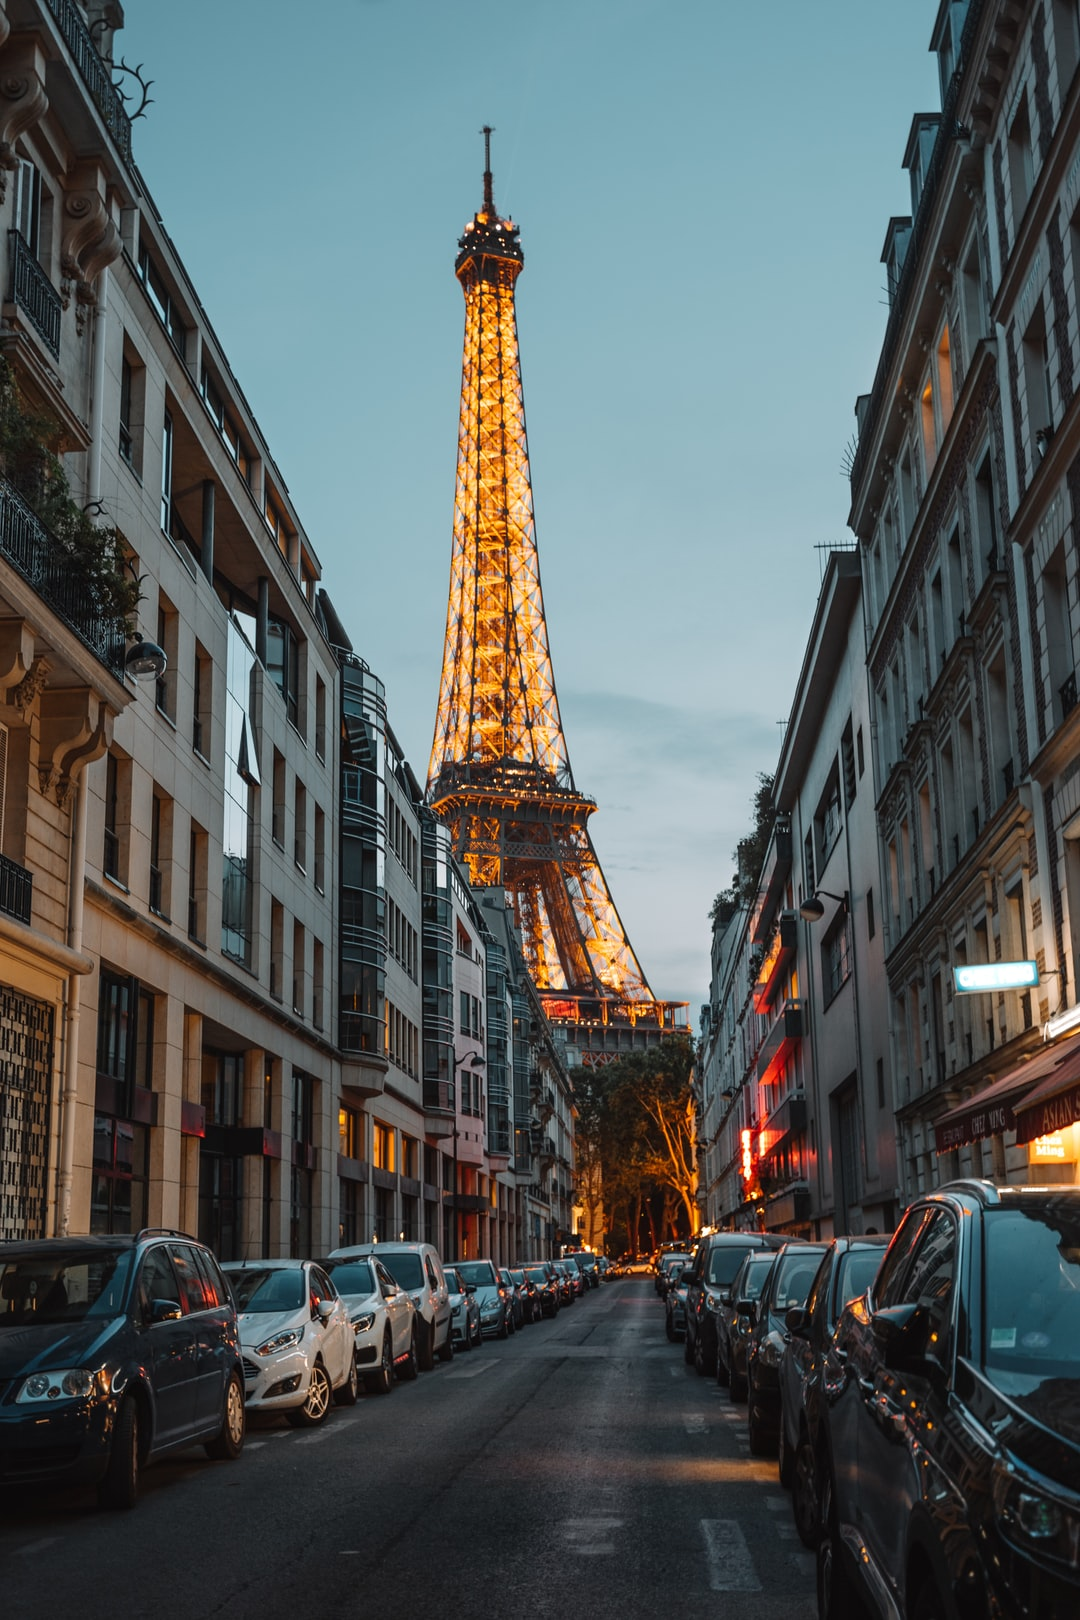 Eiffel Tower in the city of Paris, France